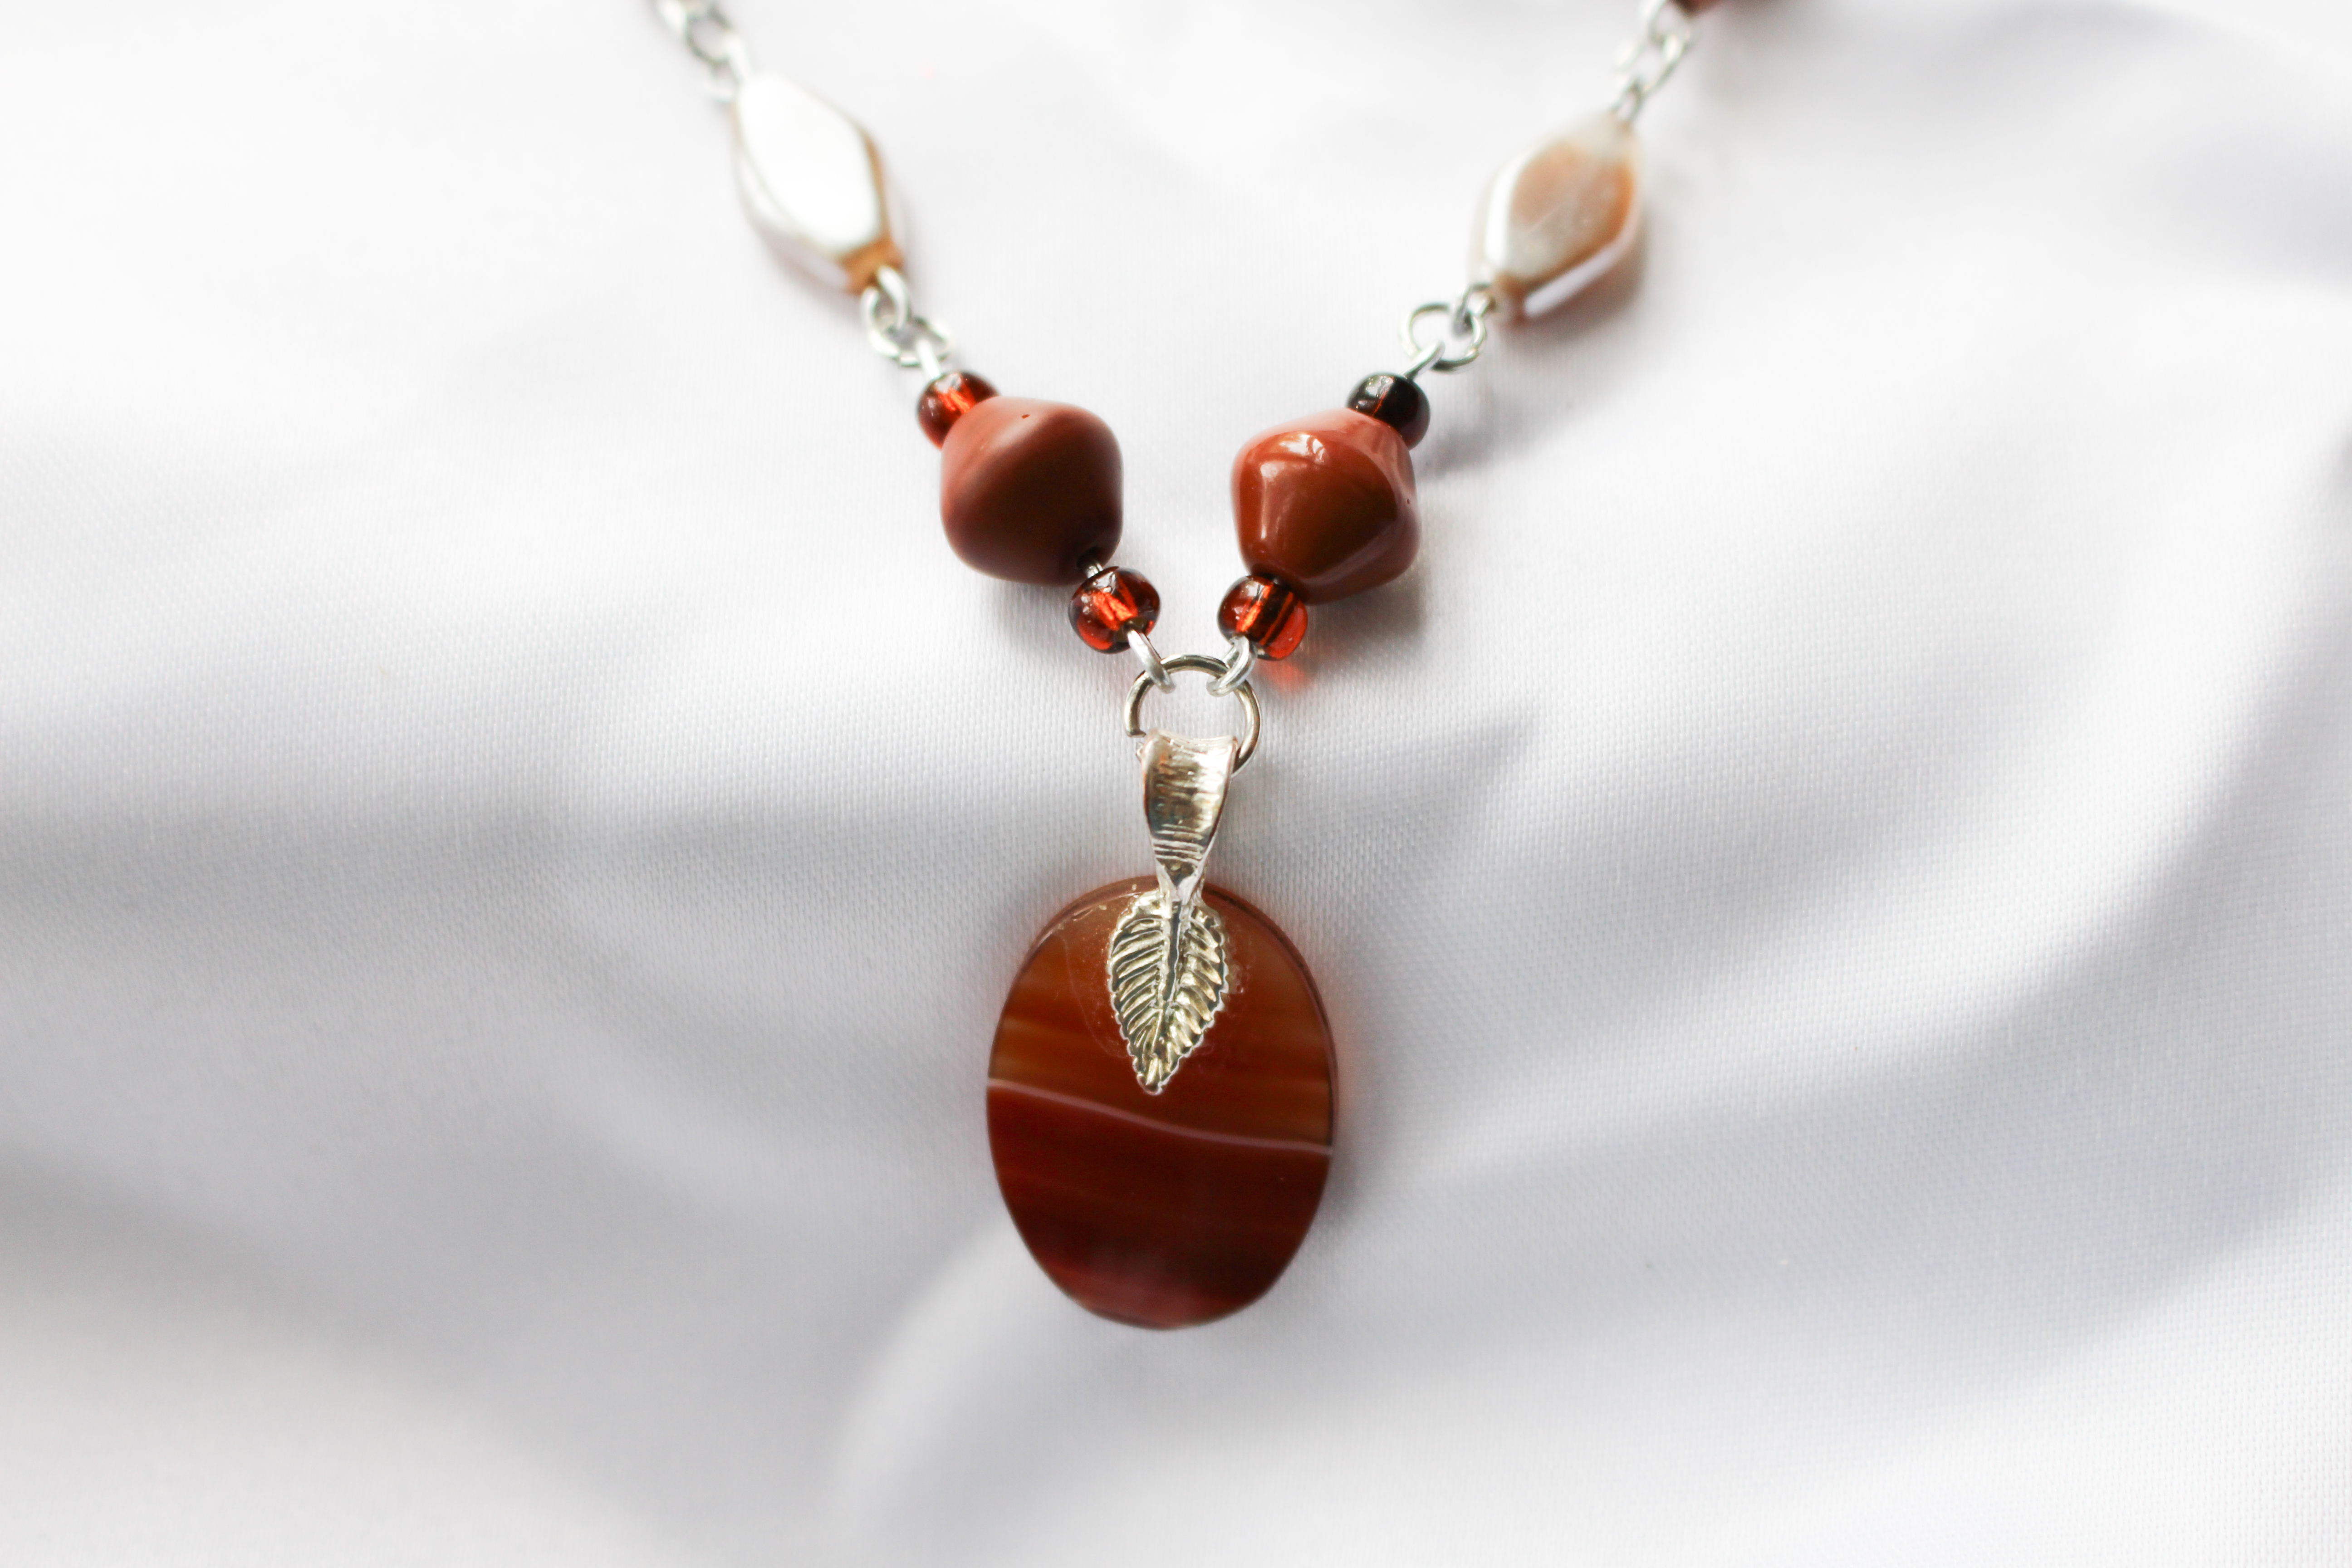 Orange Agate Pendant on SpiceColor Beaded Necklace by ...